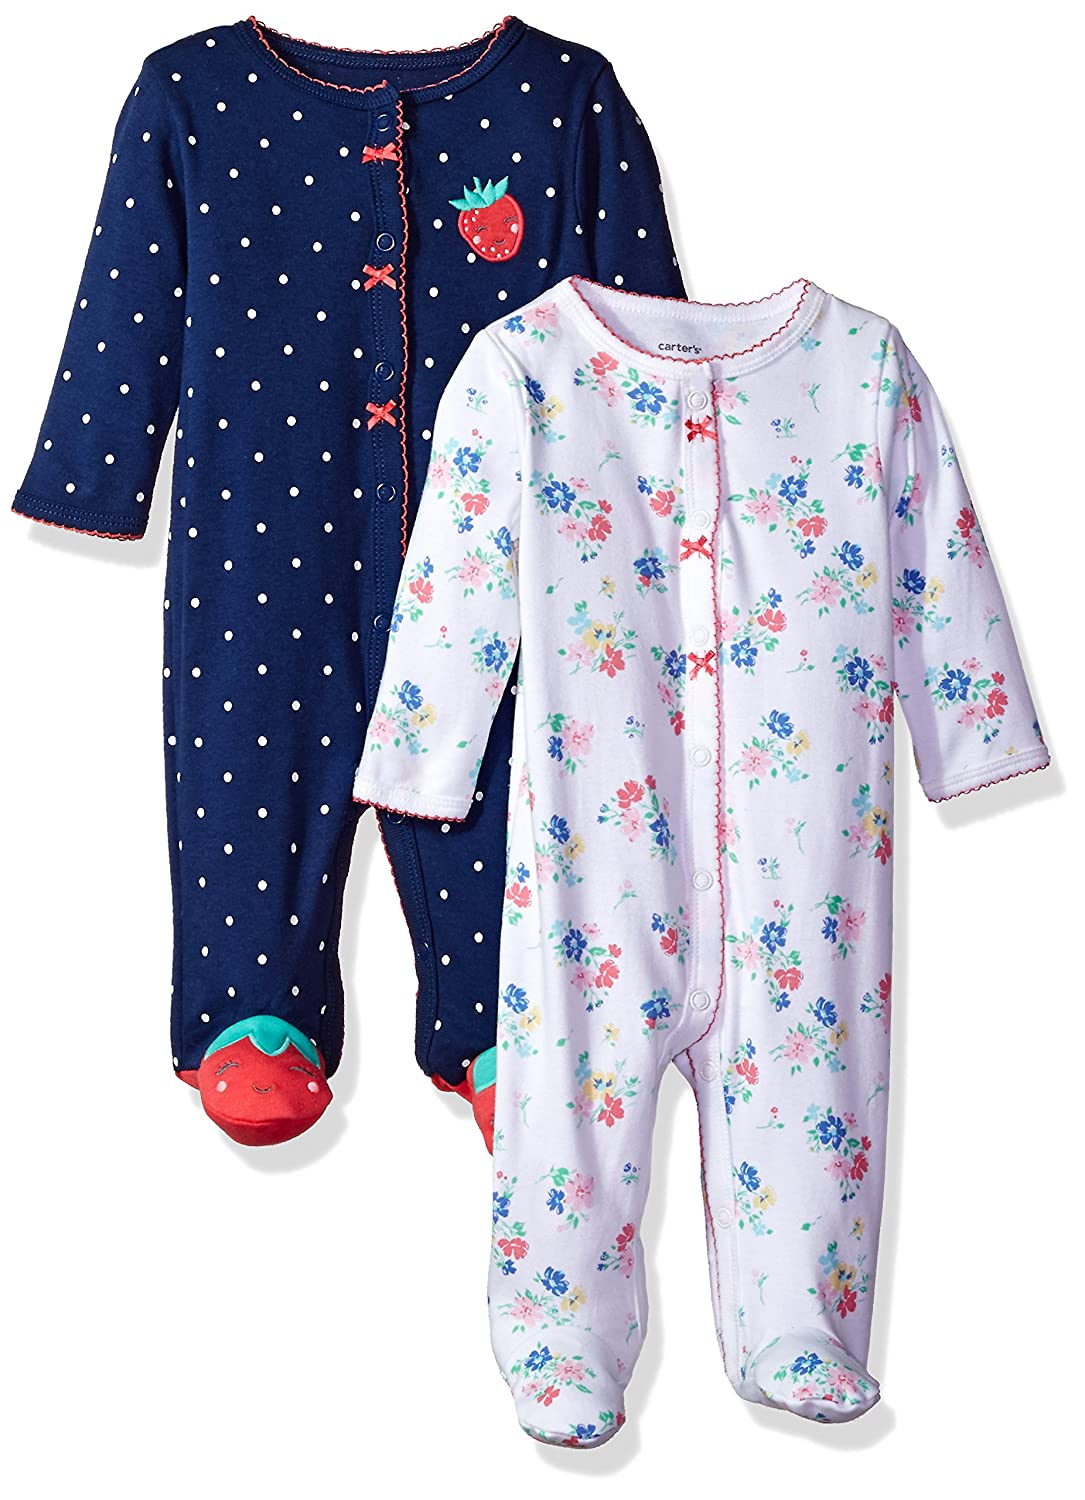 Carter's Girls' 2-Pack Cotton Sleep and Play Carters KBC 115G30-2